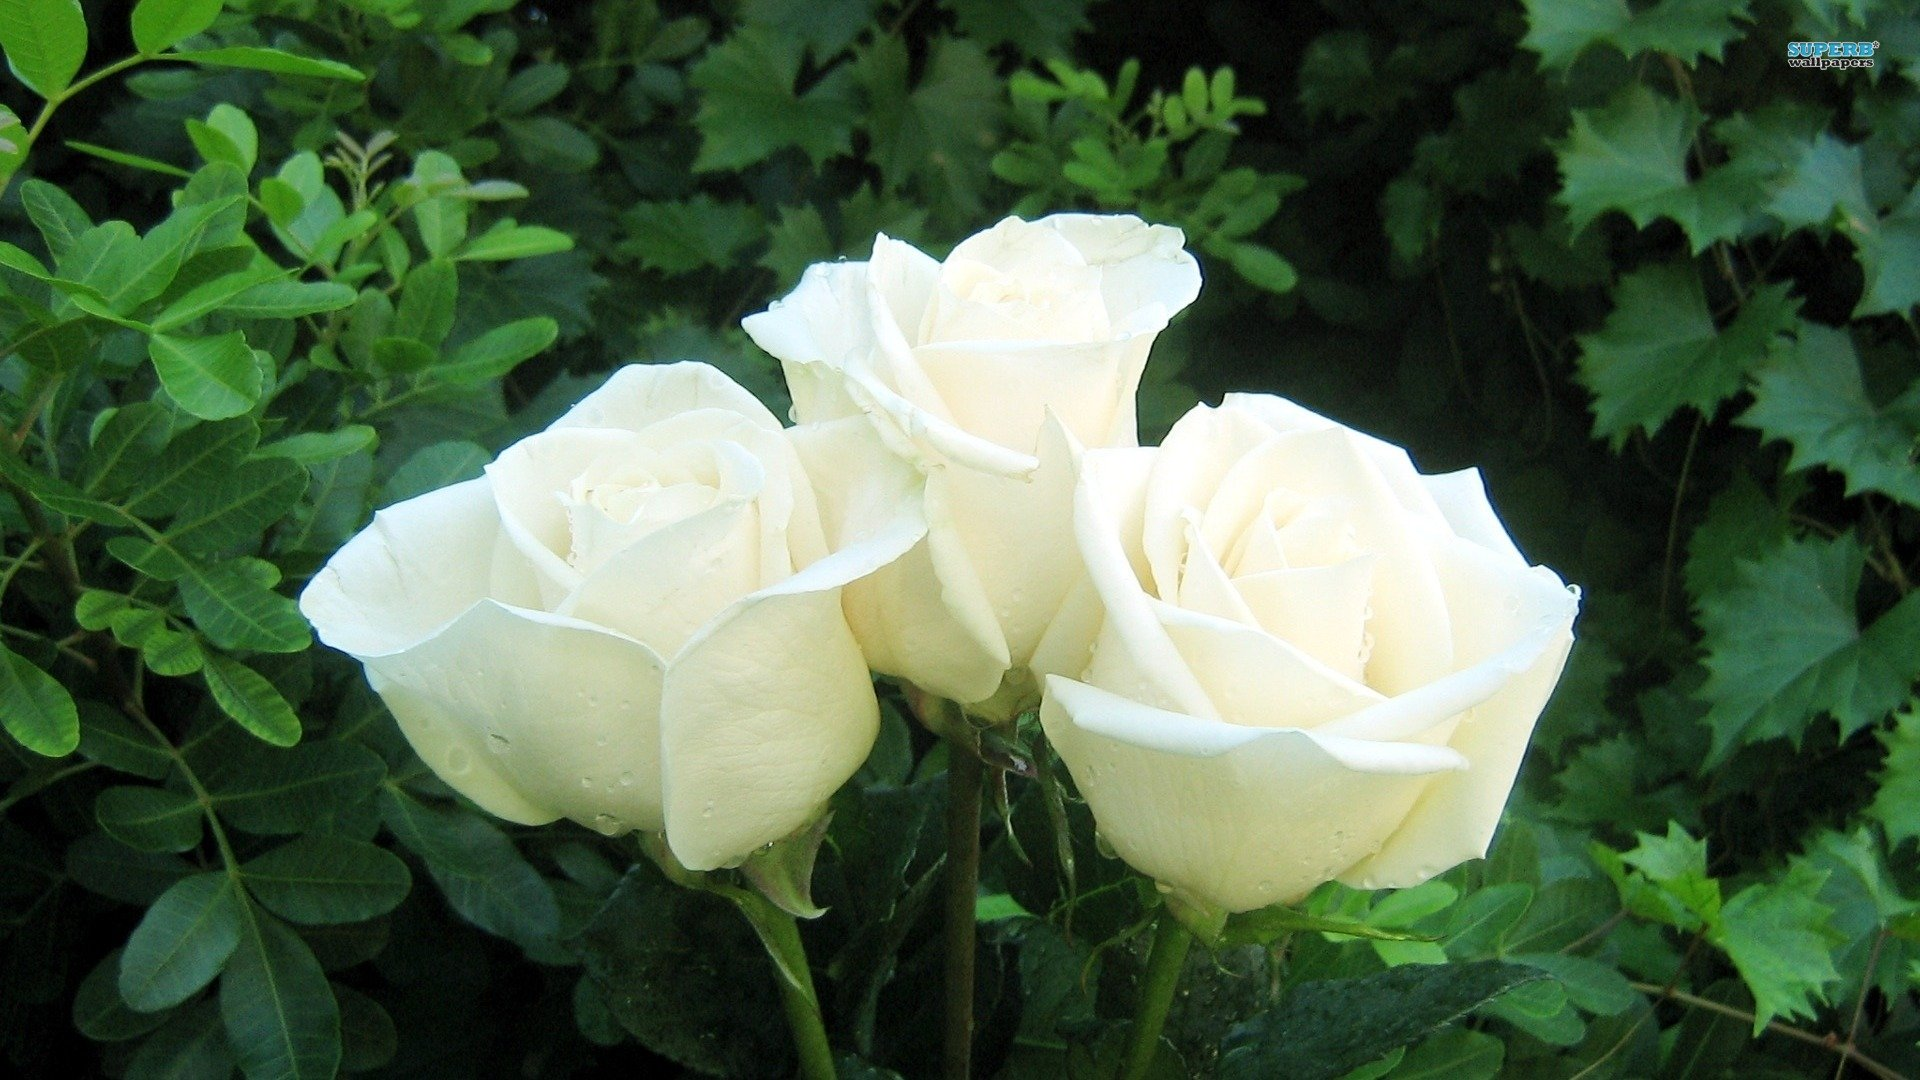 Fine White Rose Flowers Images Photos - Wedding and flowers ...